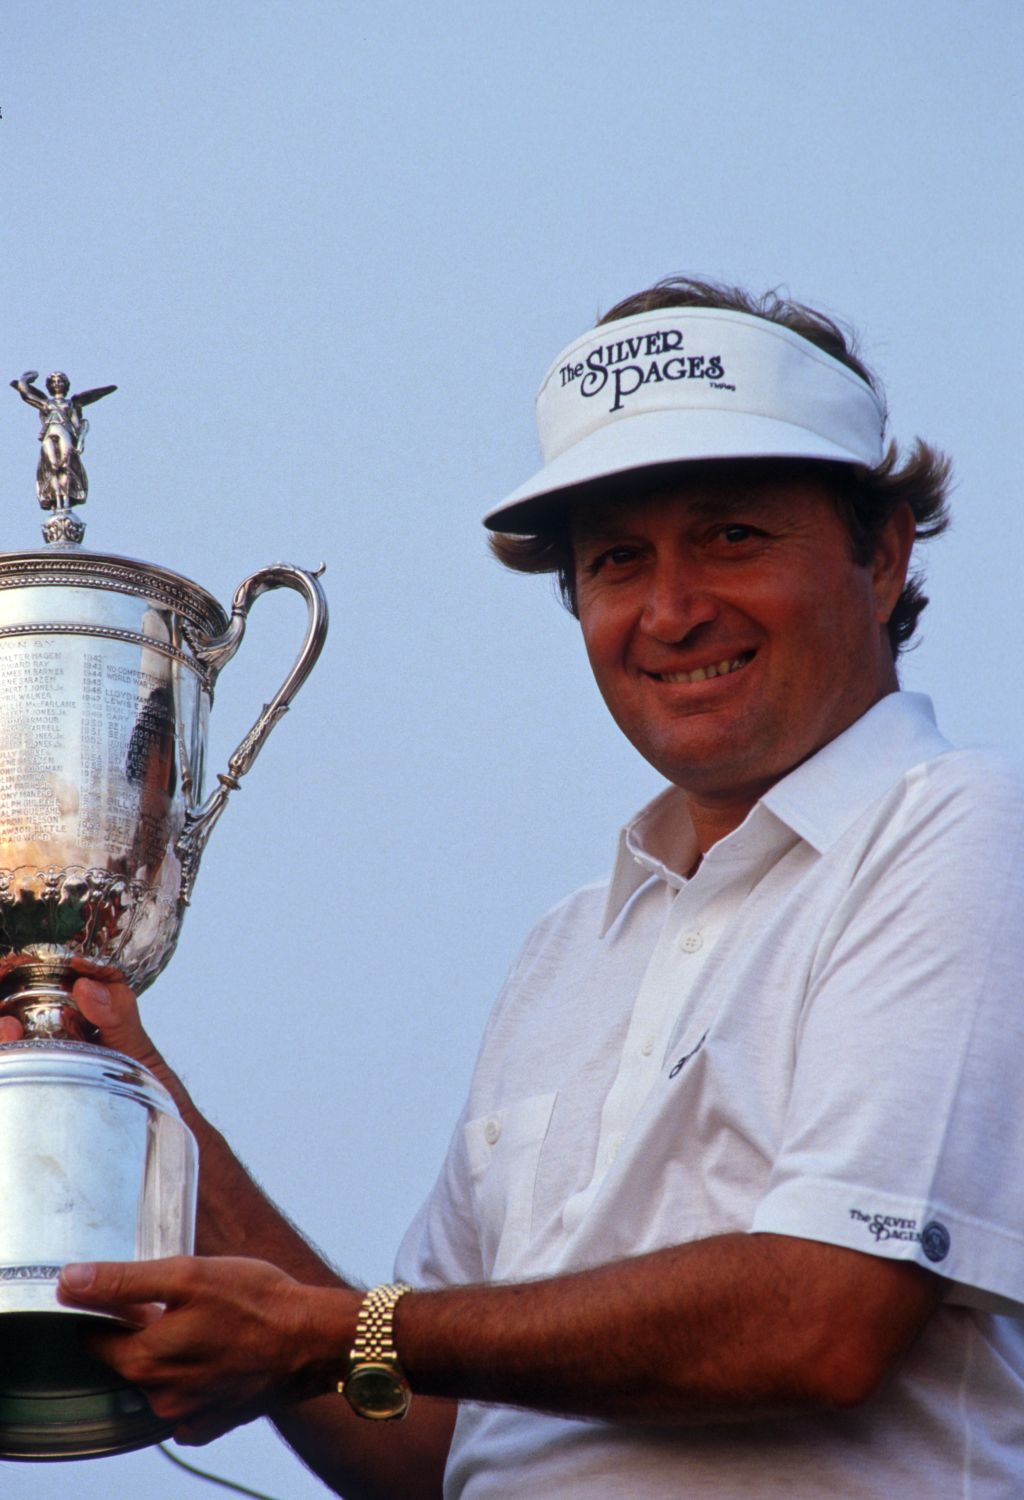 Golfer Ray Floyd lifts the winner's trophy at the 1986 United States Open Championshp